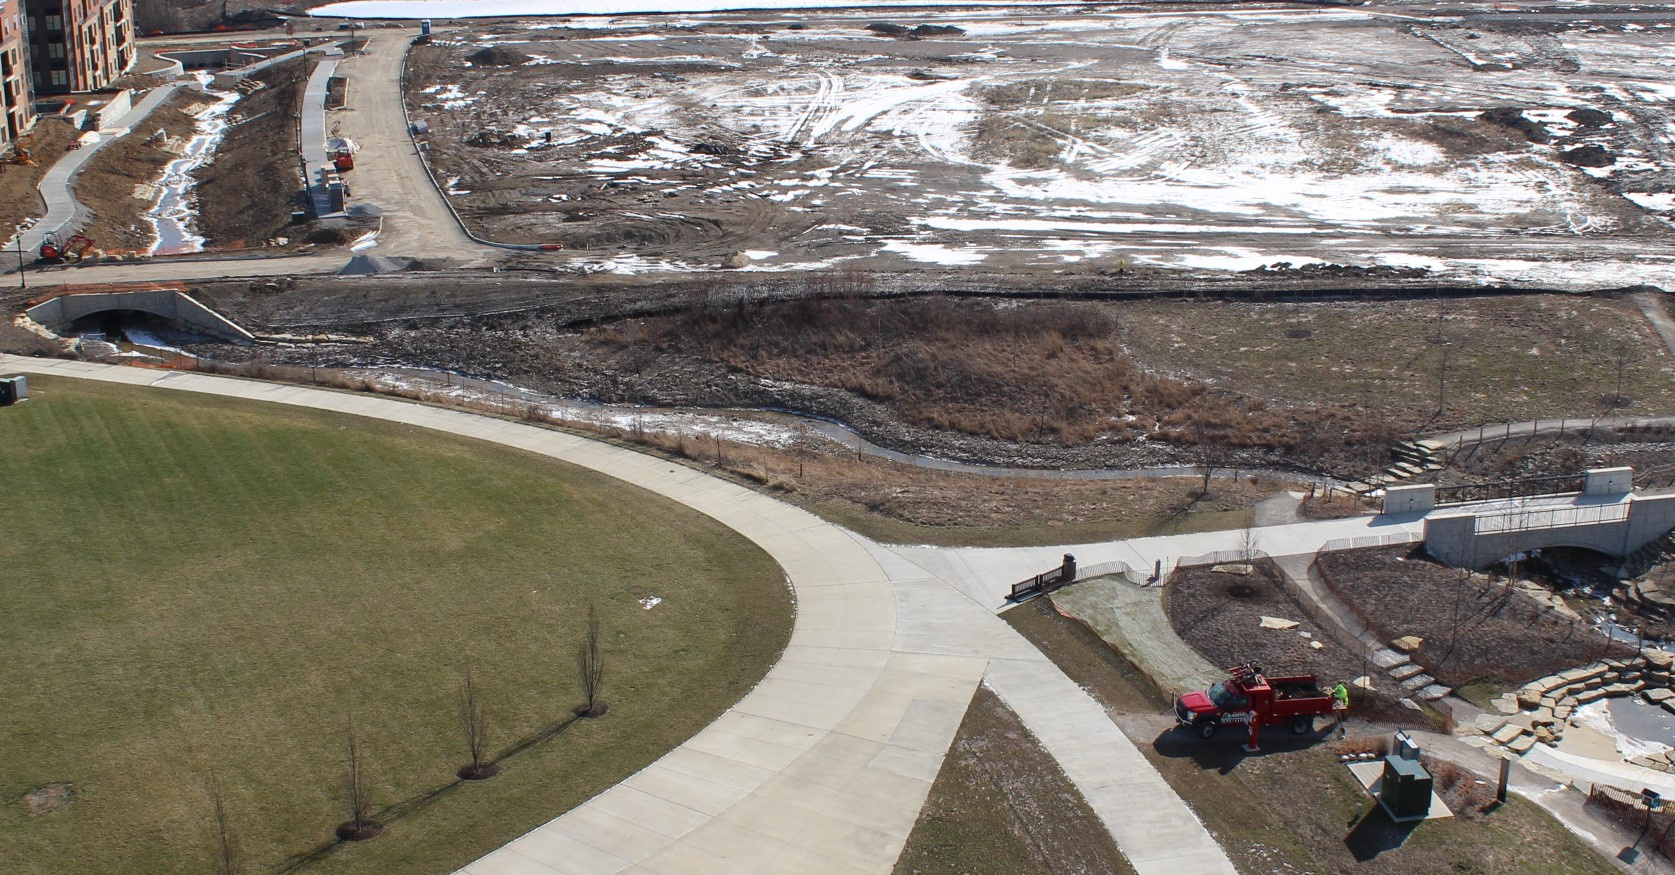 The grant funding will be used to restore the creek area in the center of the picture